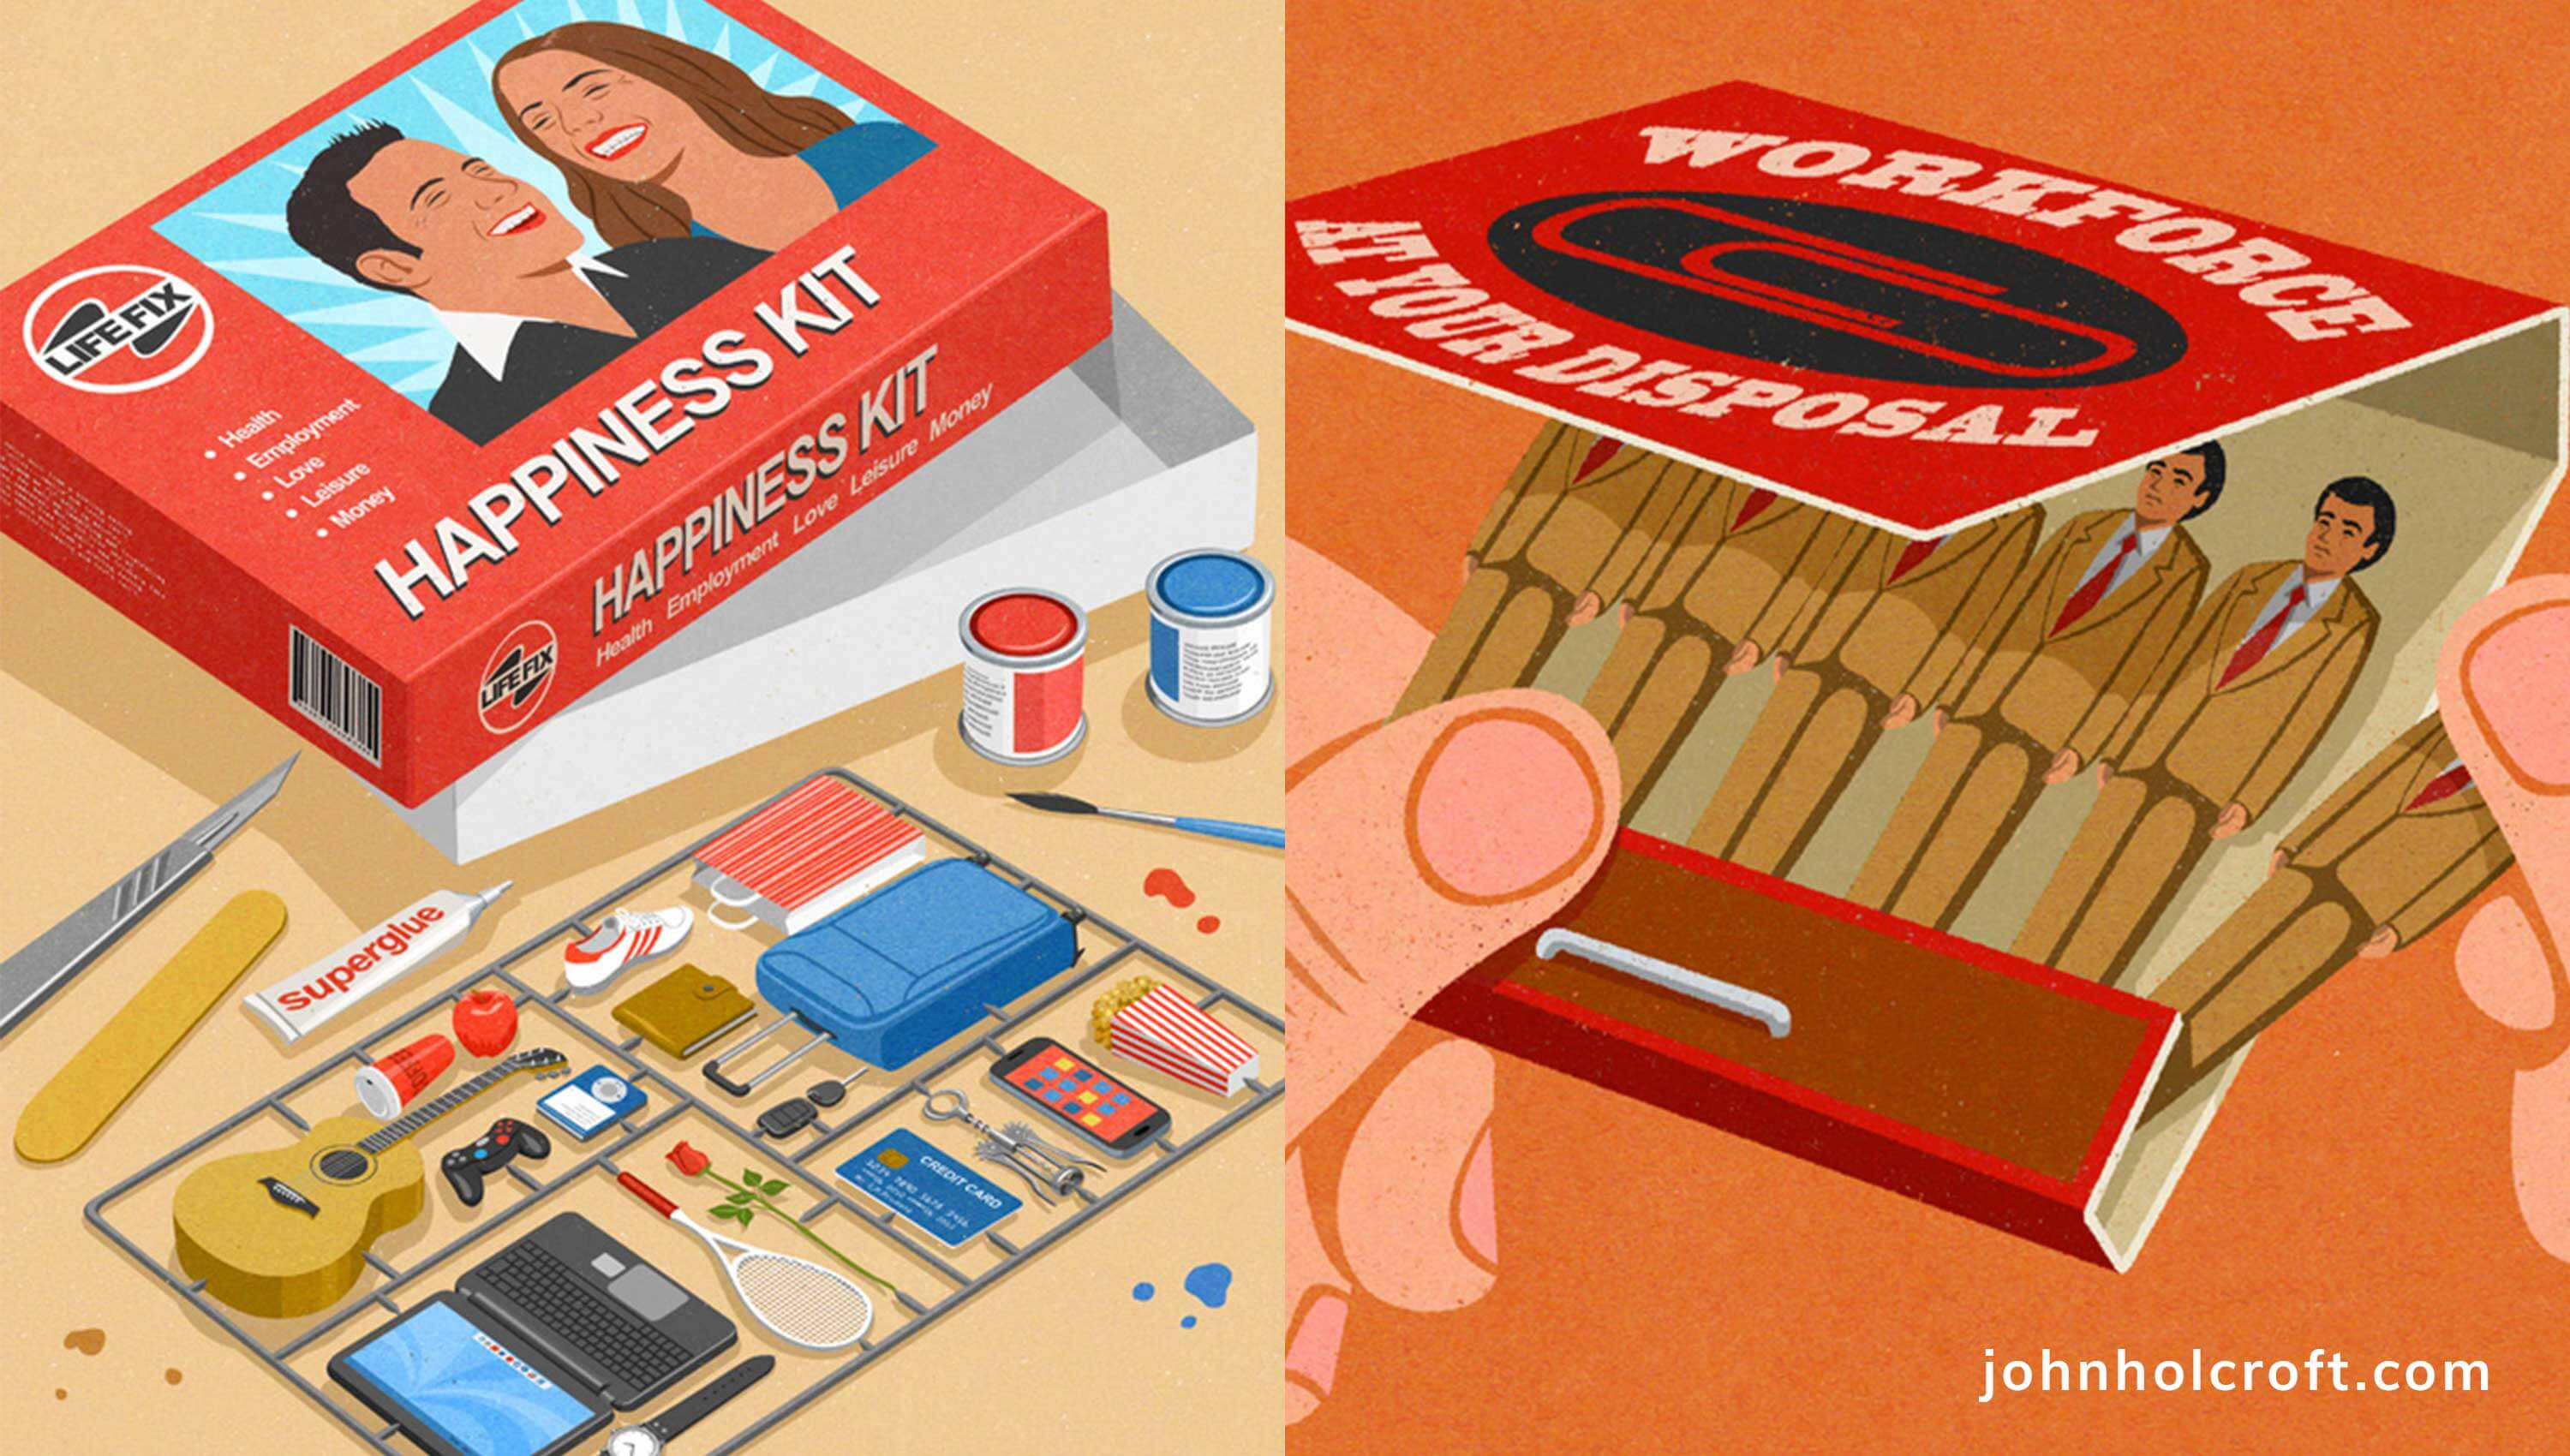 John Holcroft illustration examples.